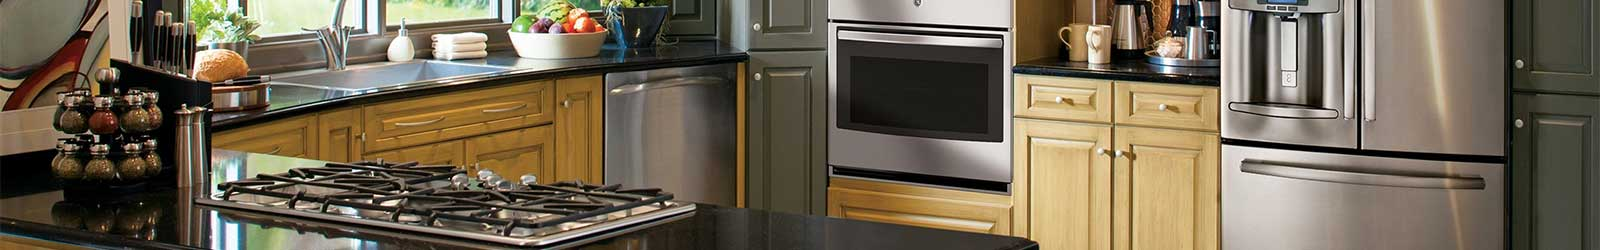 beautiful Kitchen Appliance Specialists #4: Appliance Specialists